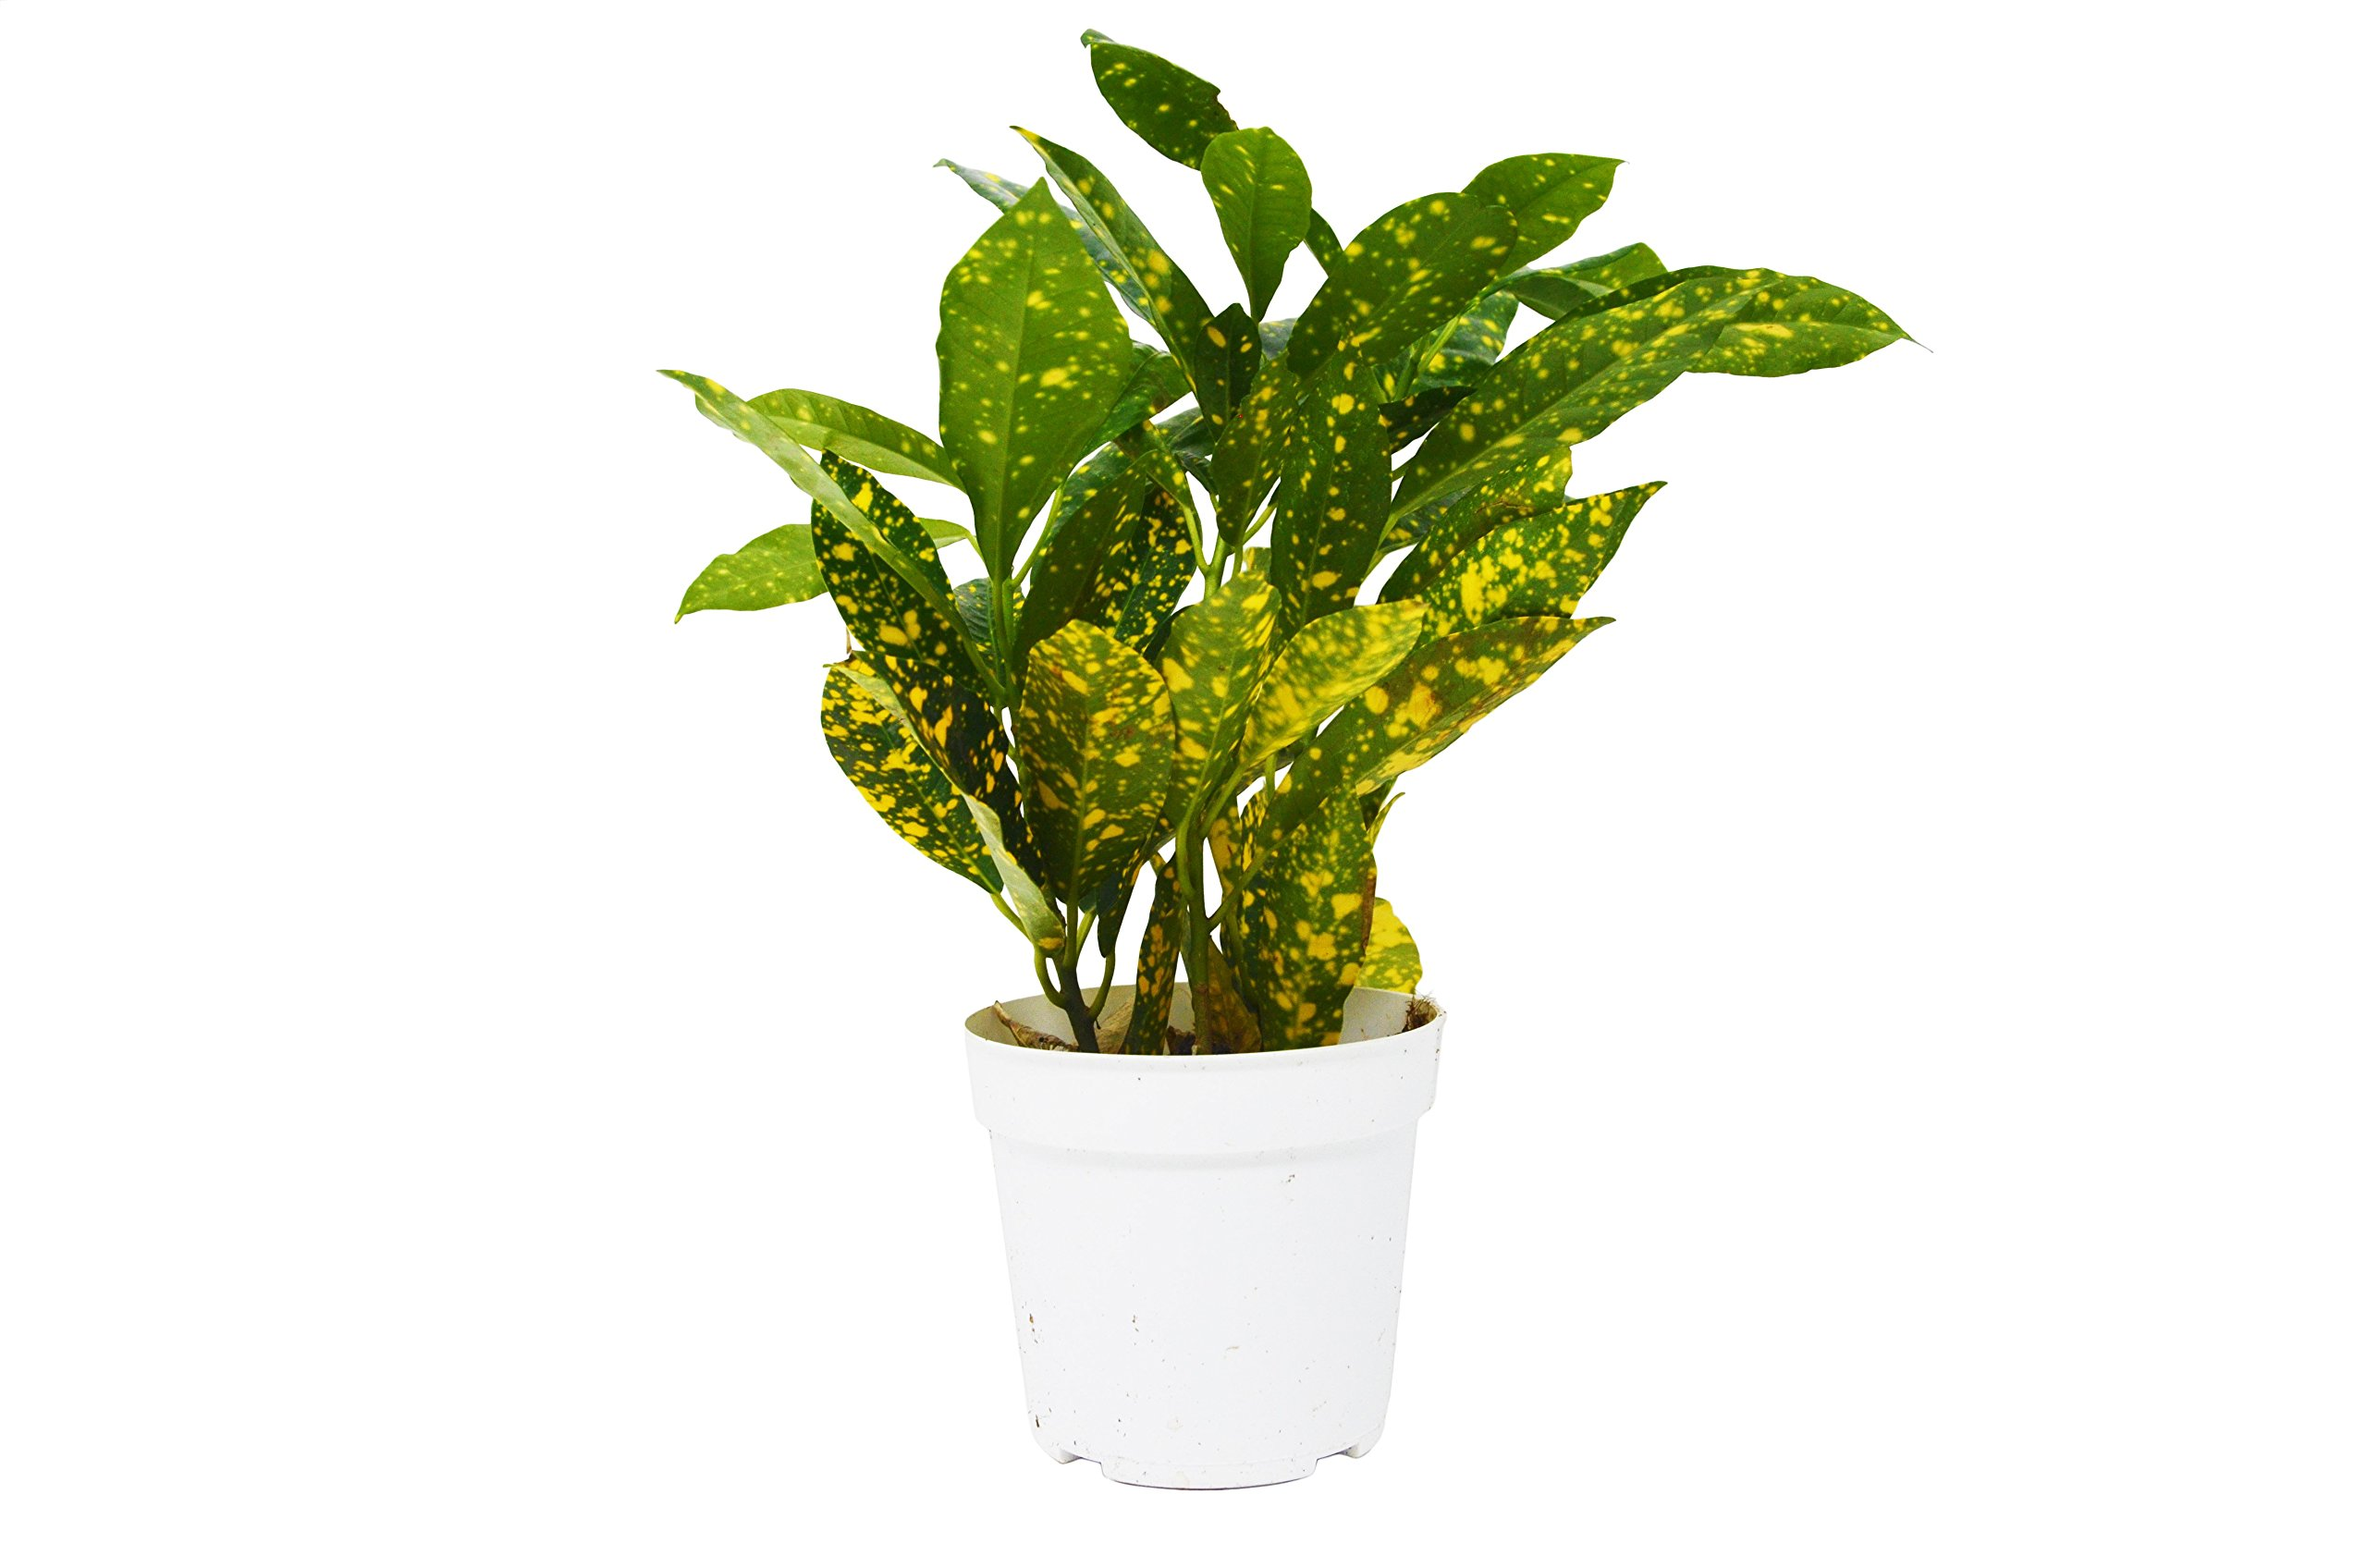 Live 'Gold Dust' Croton in Pot - Live Plant - FREE Care Guide - 4'' Pot by House Plant Shop